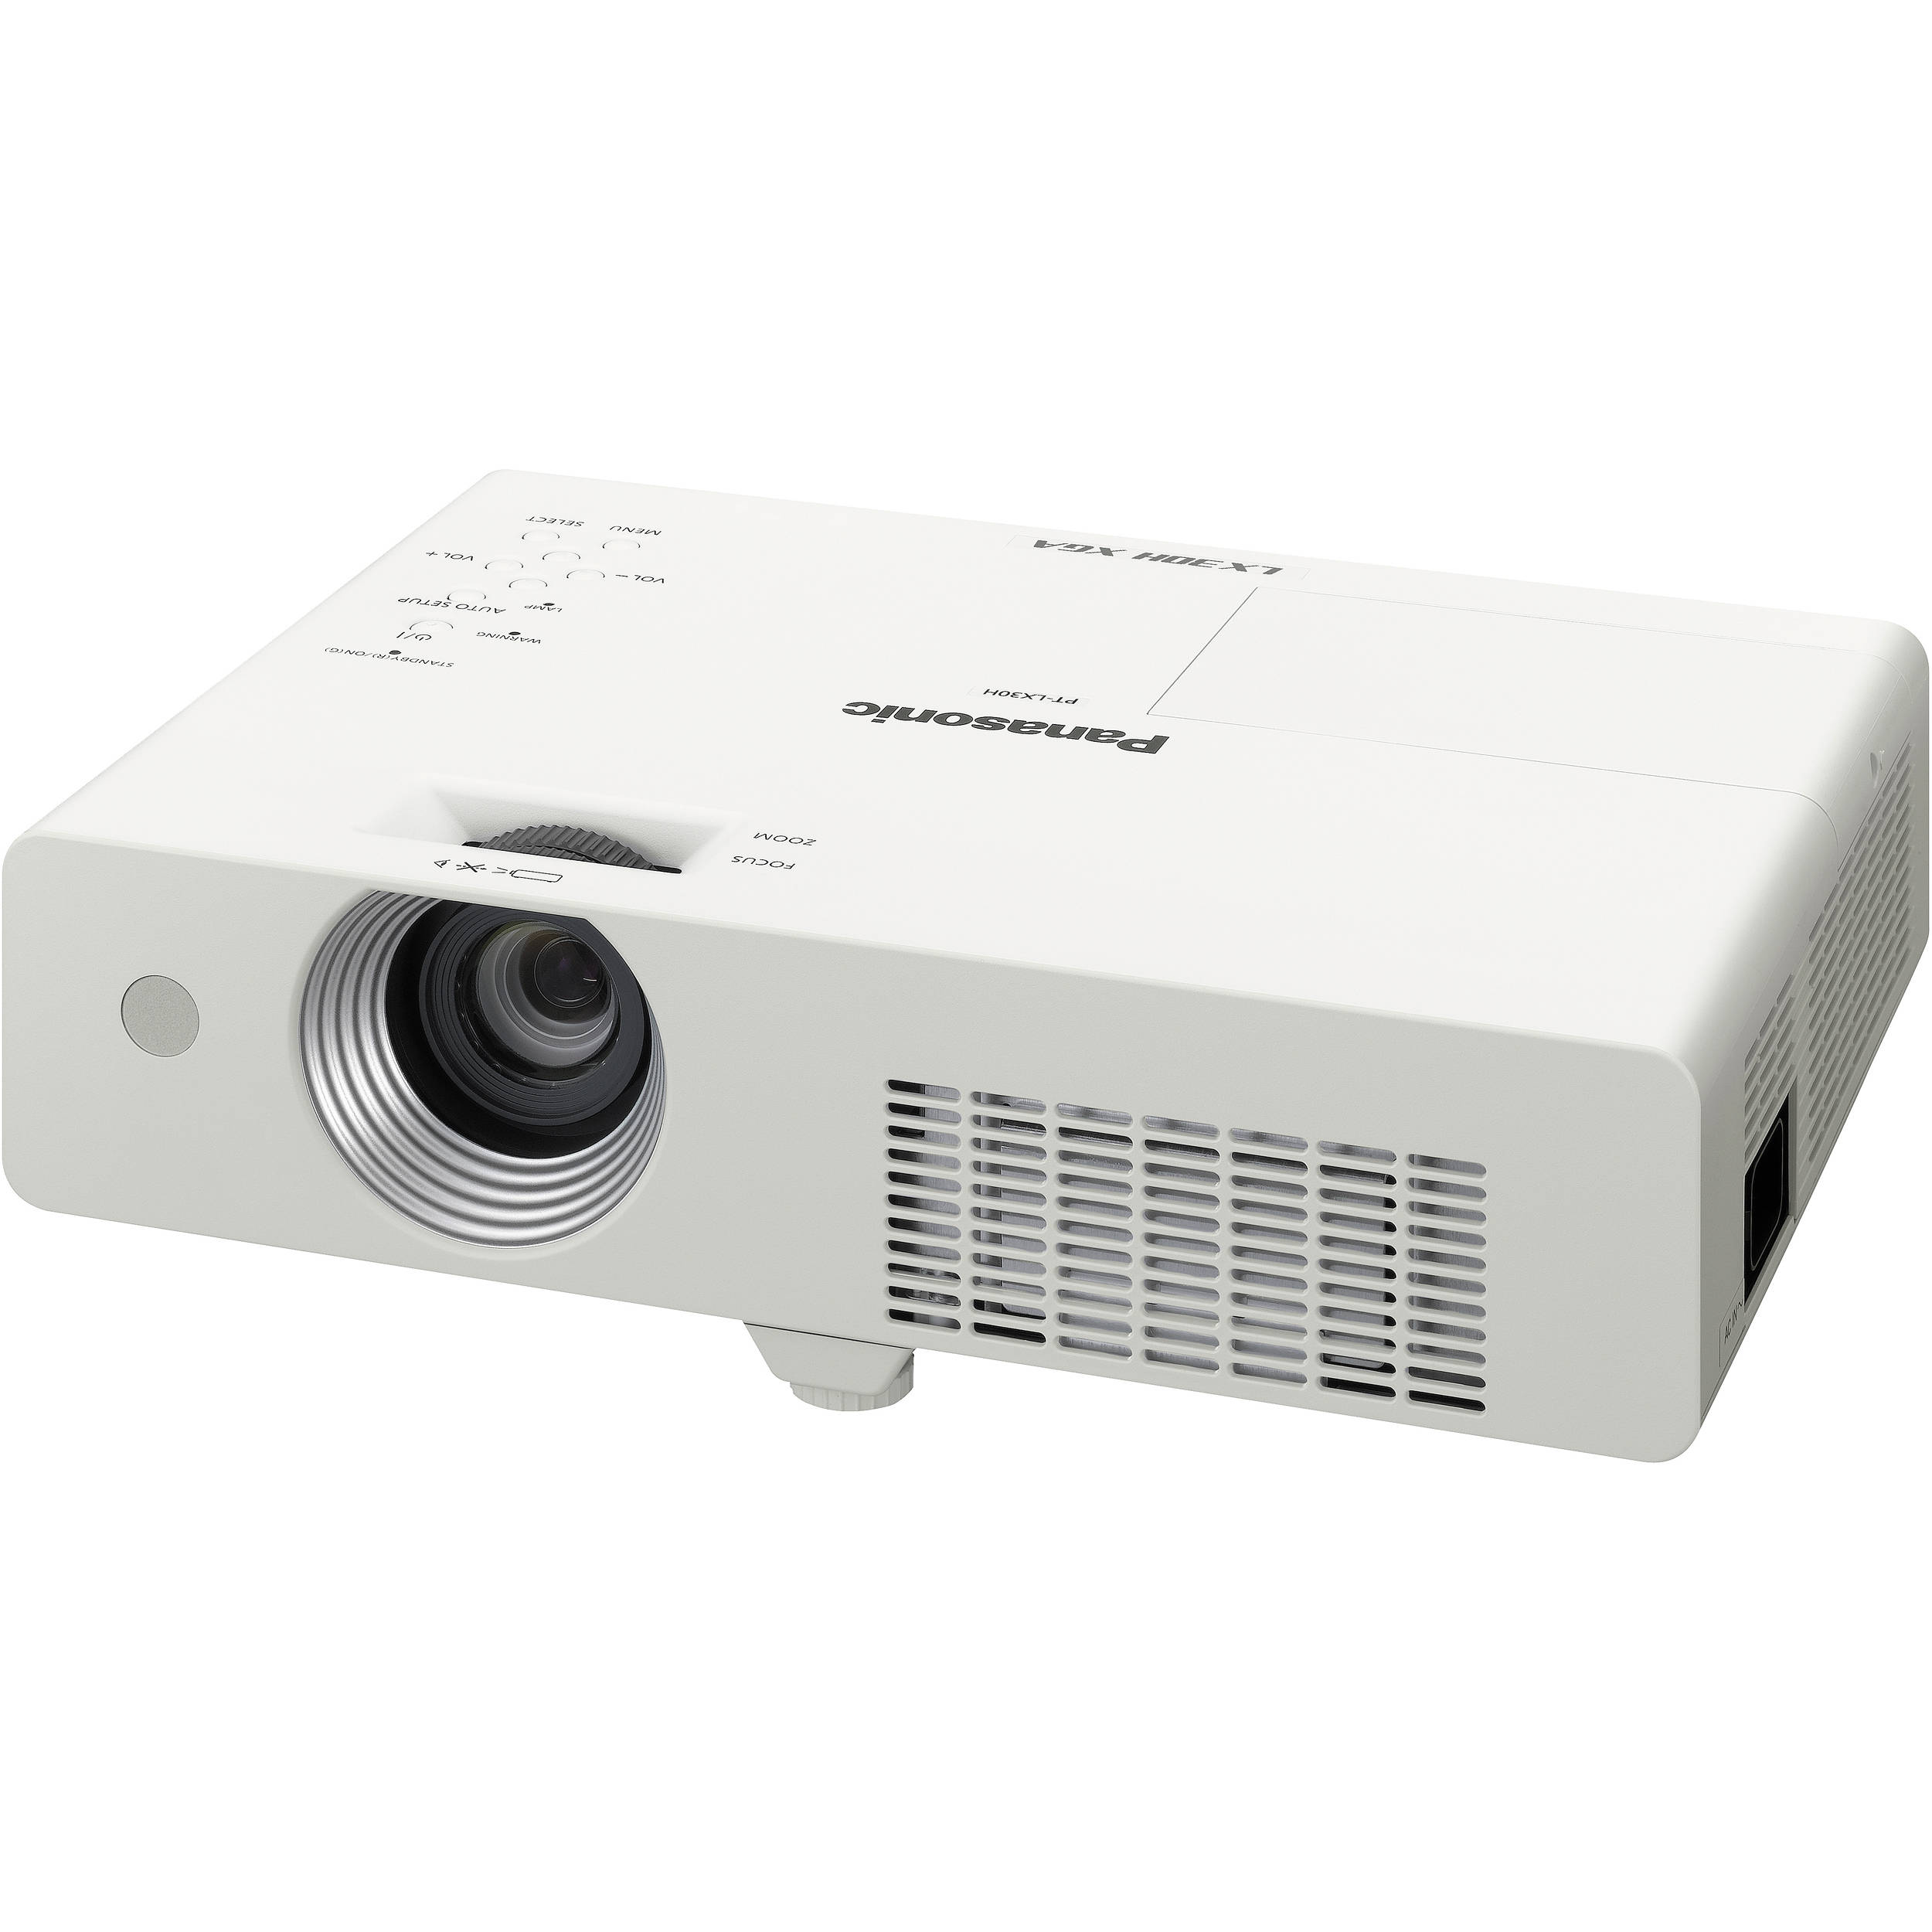 Panasonic pt lx30hu portable lcd projector pt lx30hu b h photo for Best compact projector